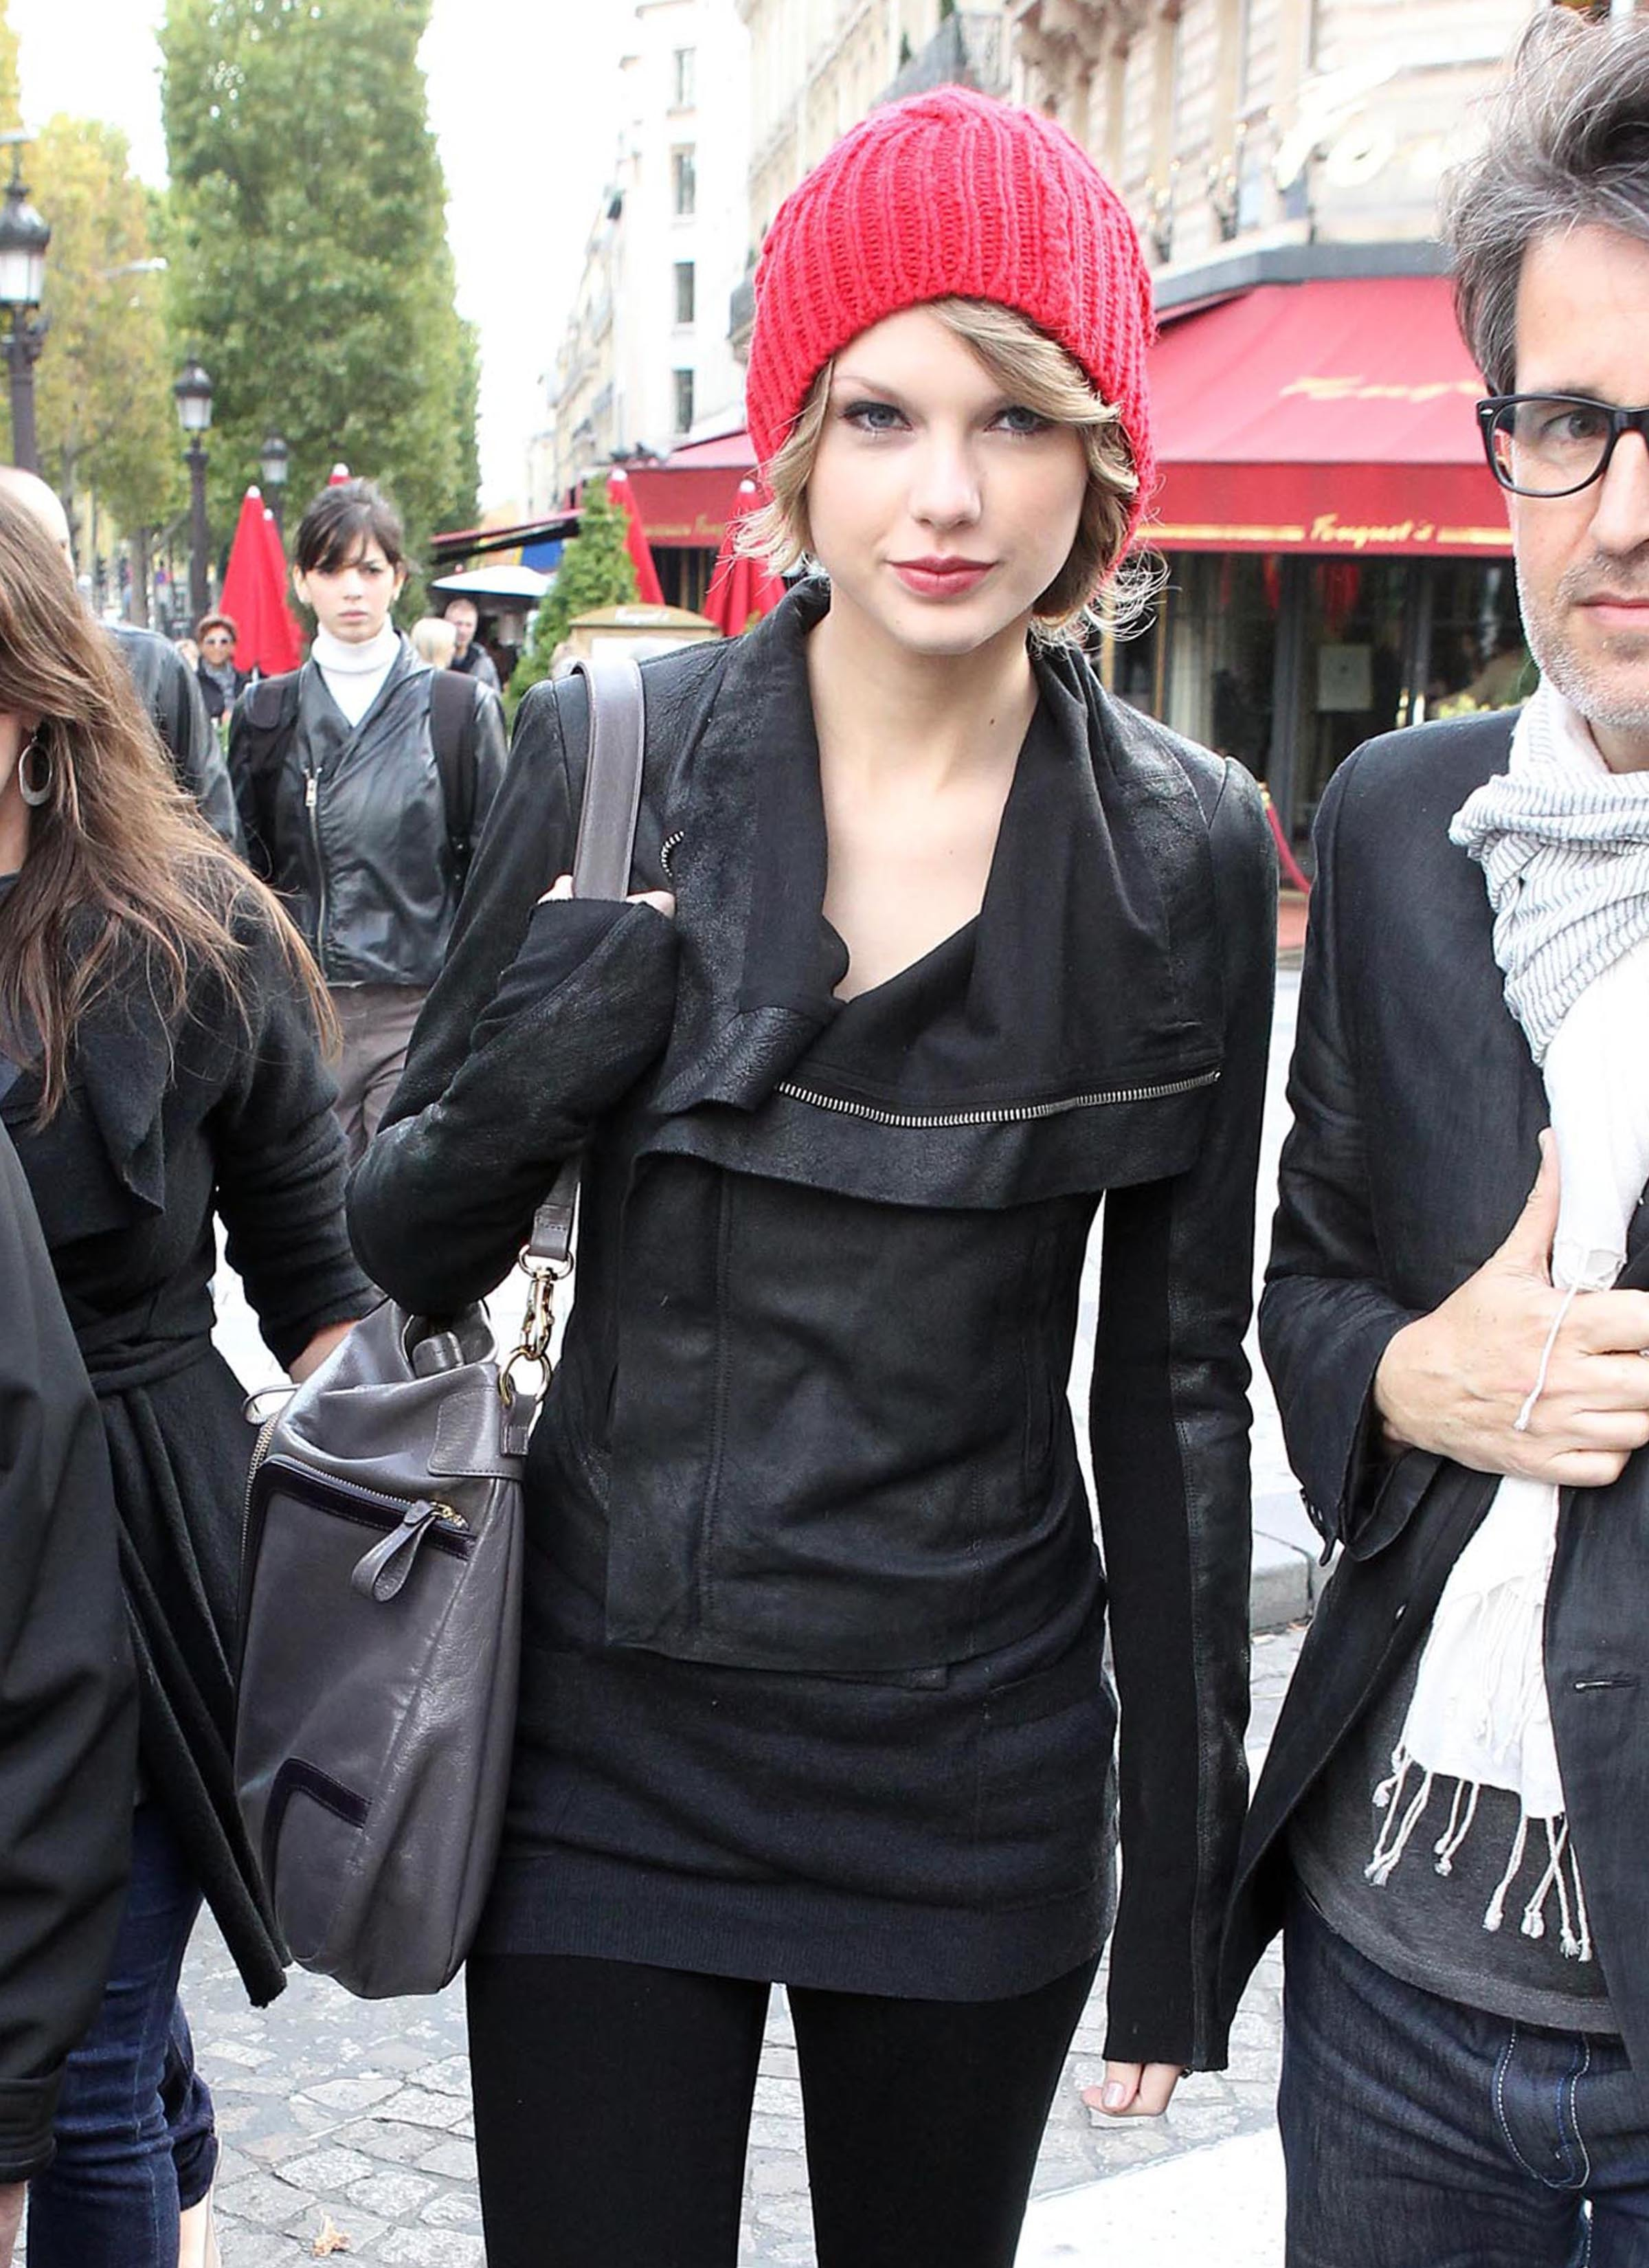 FP_5818530_ANG_Swift_TaylorParis_093010